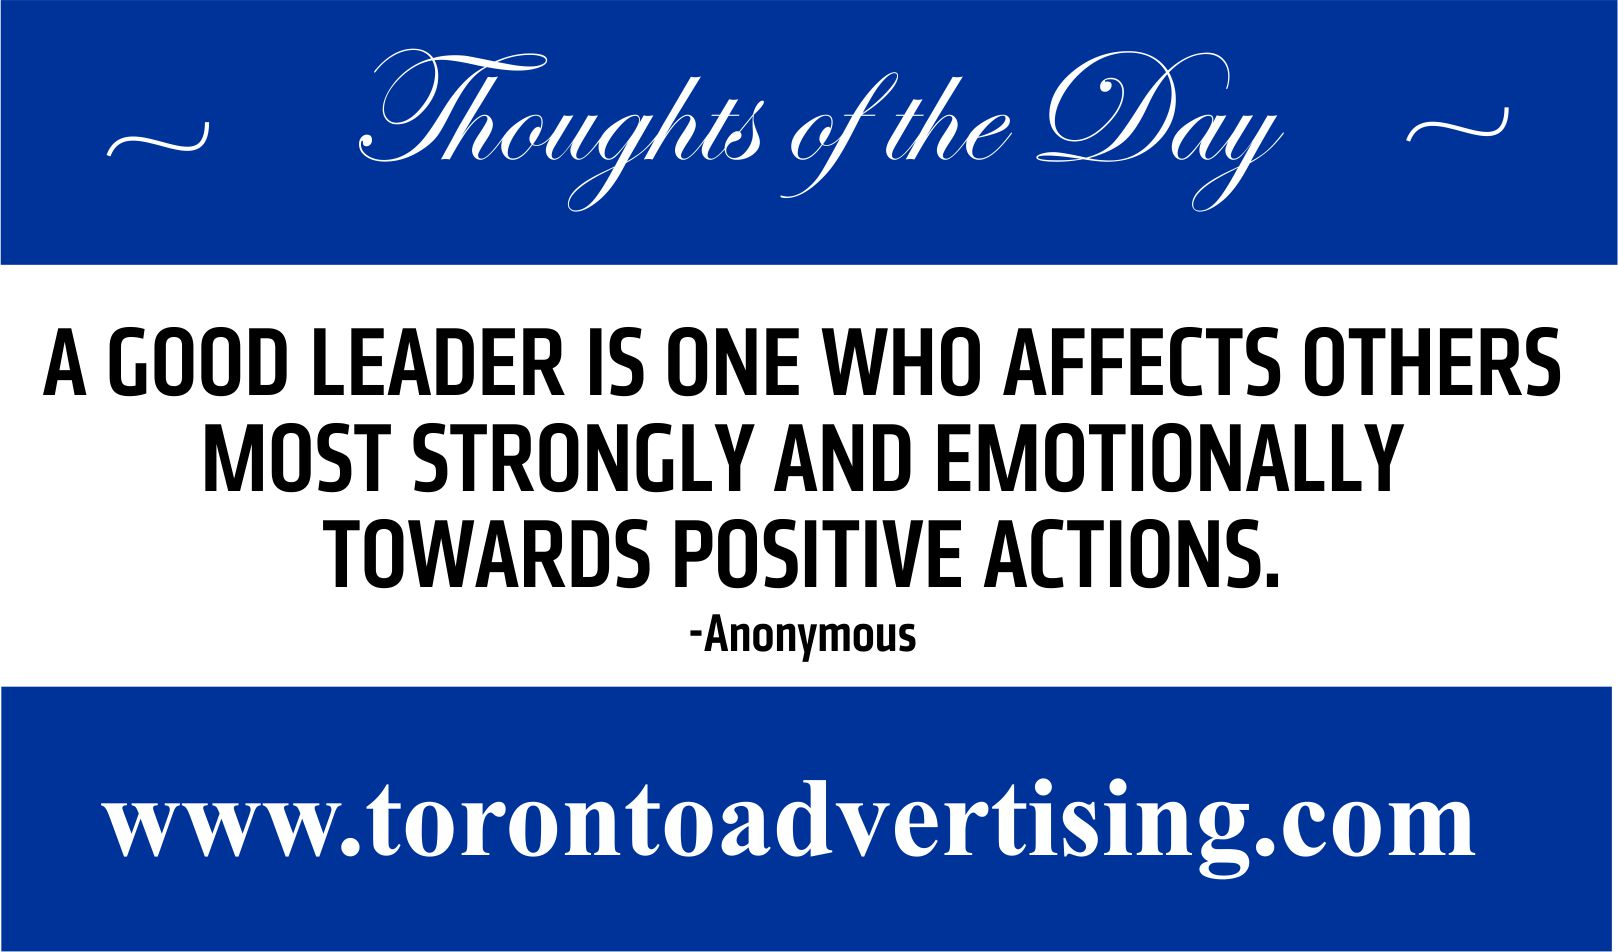 Toronto Advertising Staff